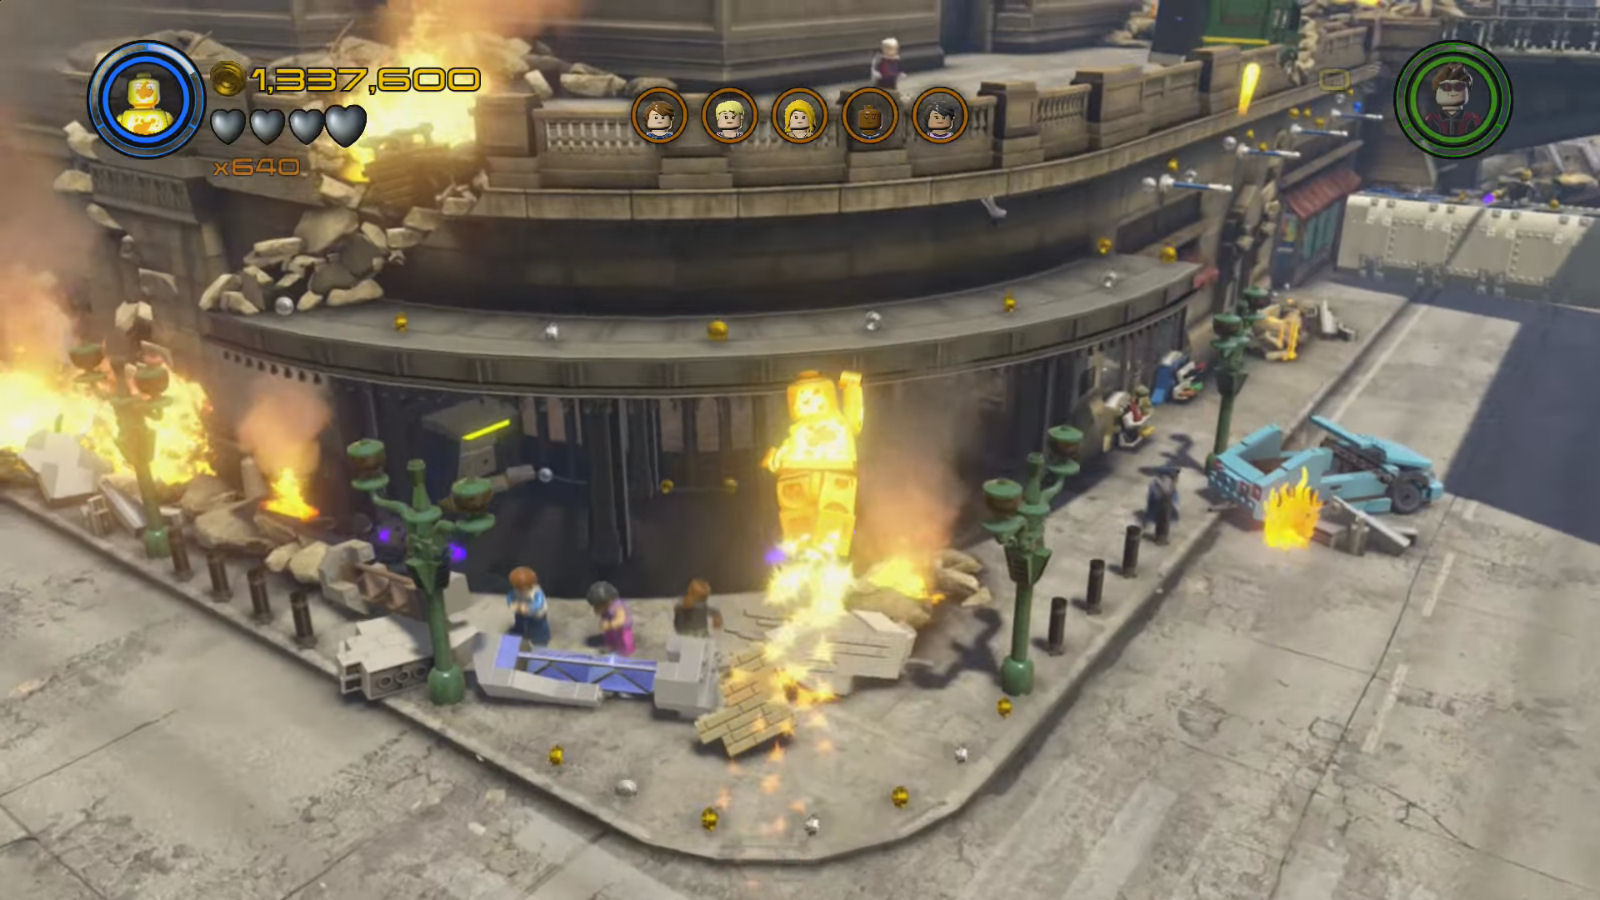 Lego Marvel's Avengers The Collector Bouffant Wig Location